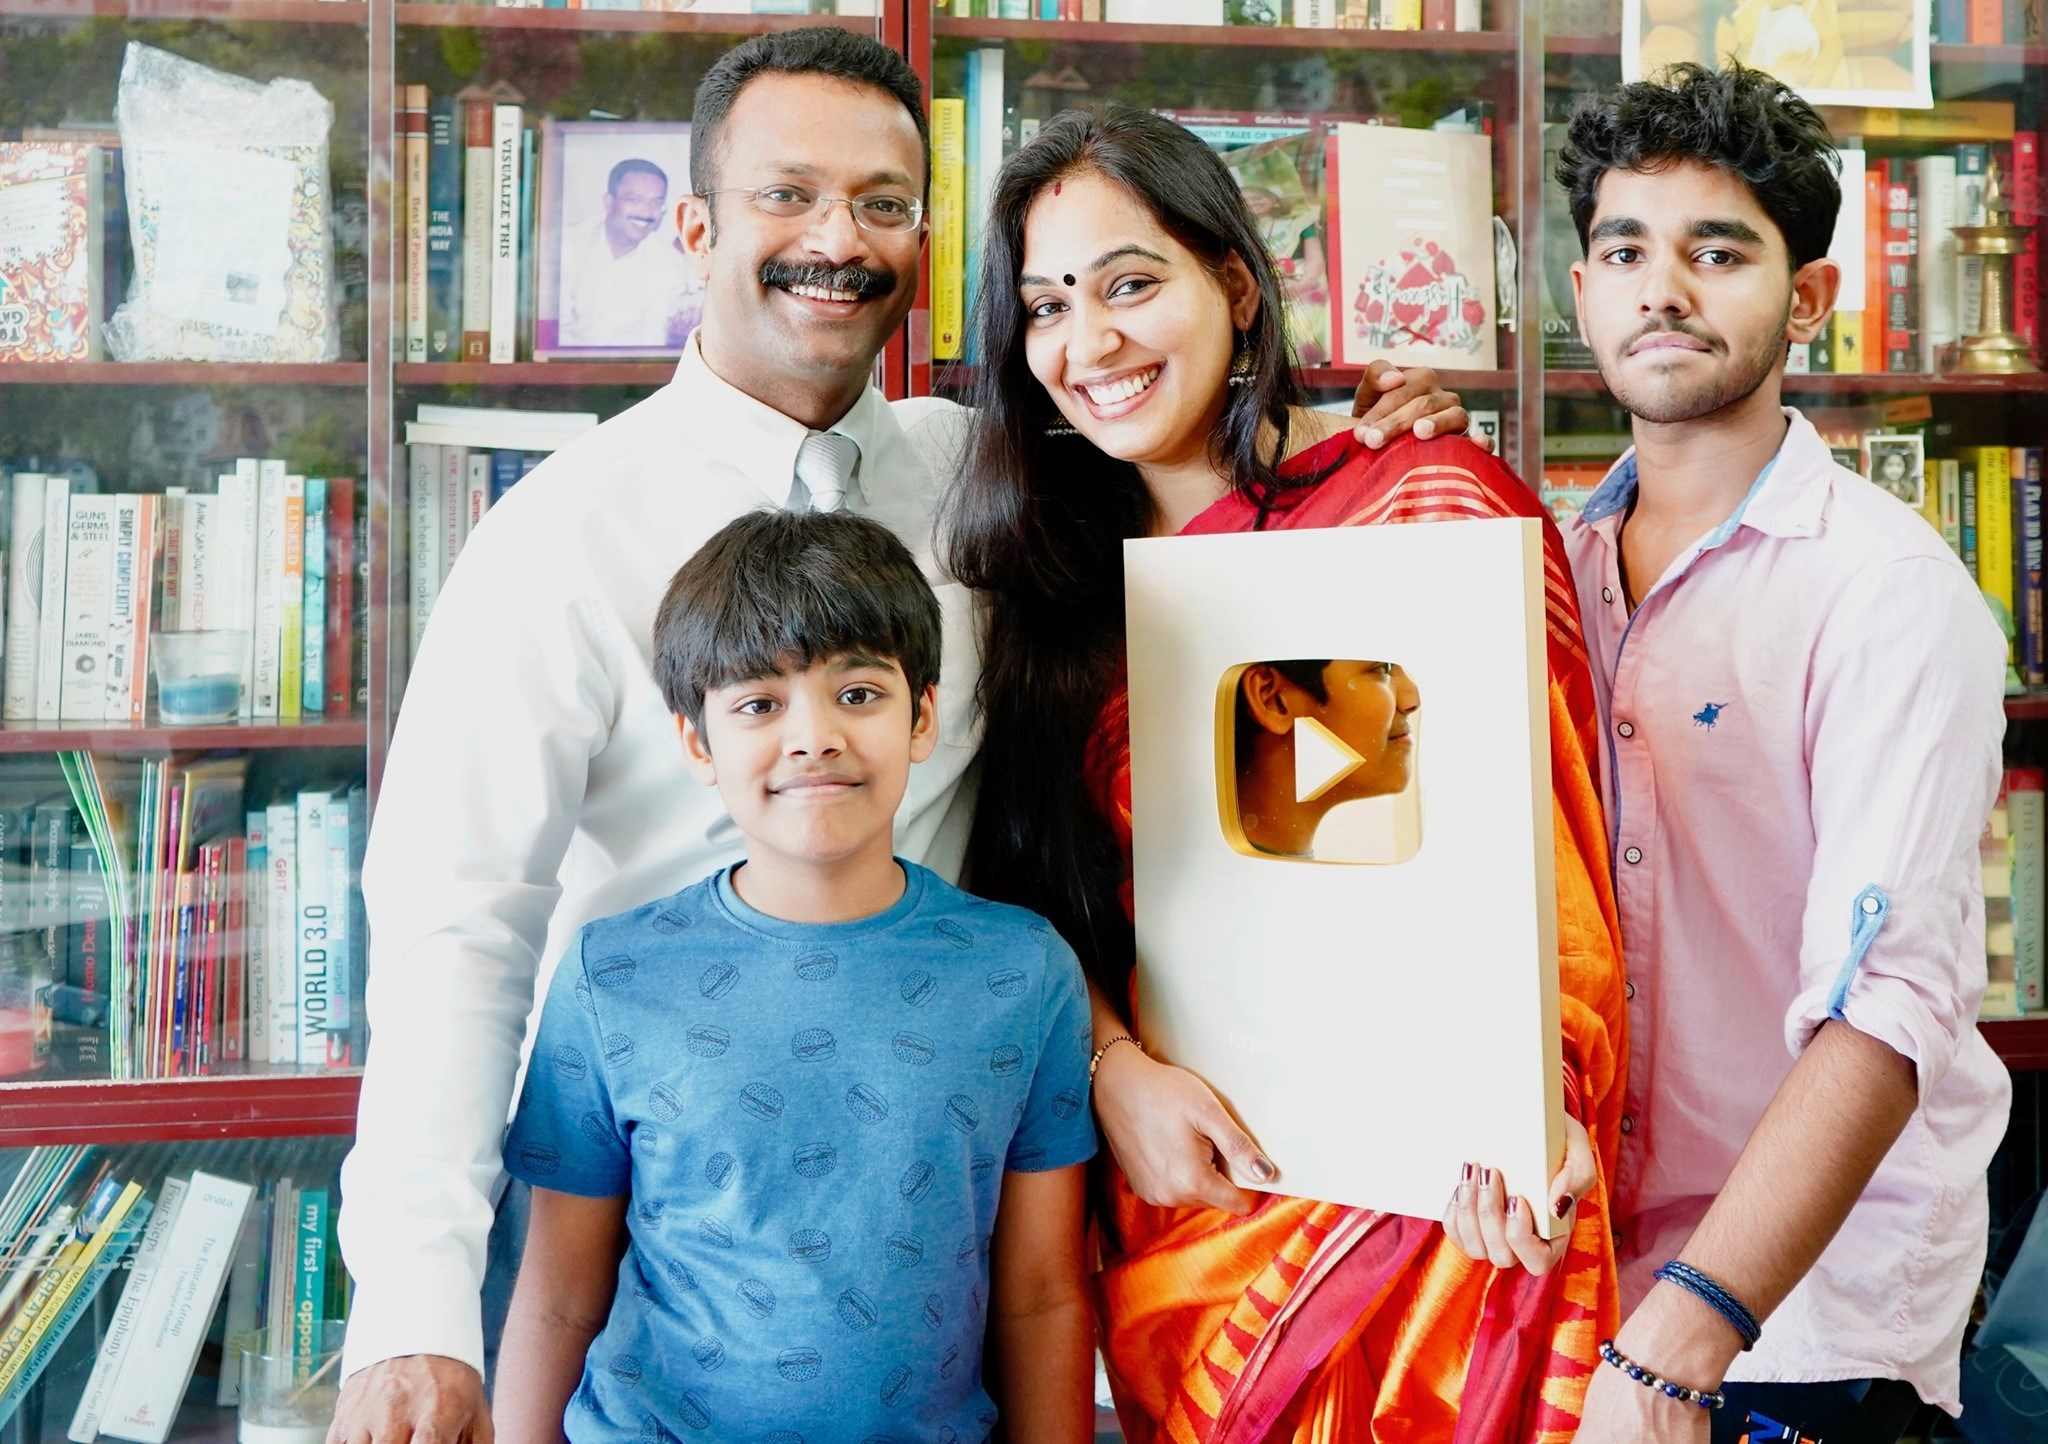 Veena of Veena's Curry World, a highly popular video blog, is the first Malayalee woman to get Golden Play Button from YouTube